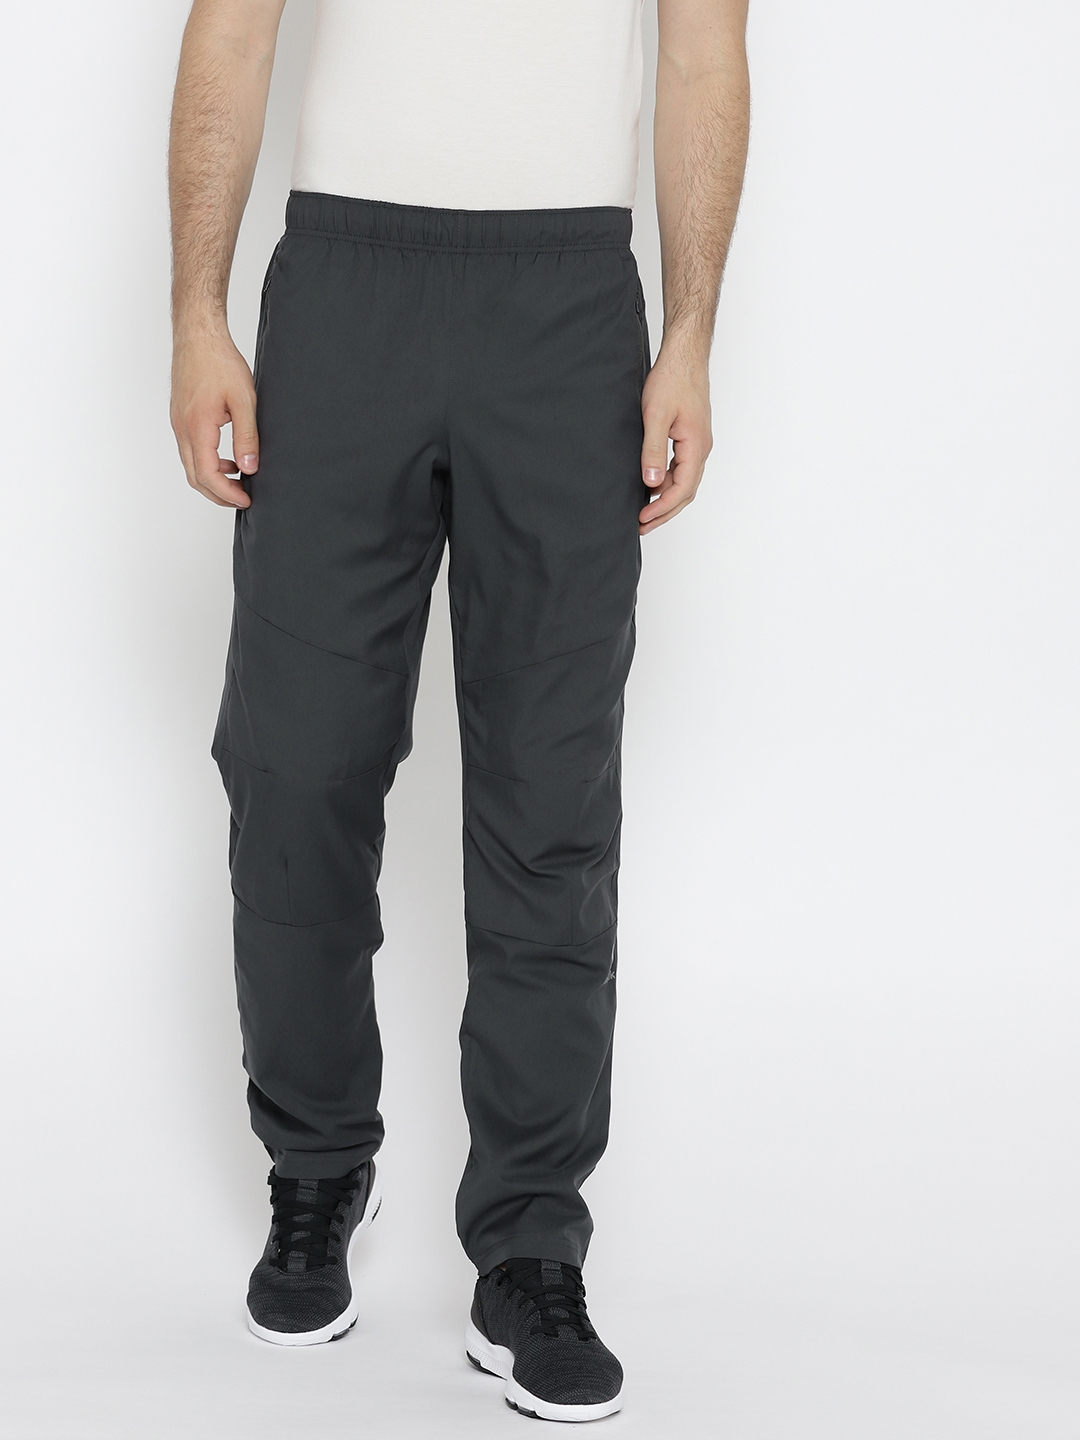 be5a312ebfaf Buy Reebok Men Charcoal Grey Fitness Woven Track Pants - Track Pants ...